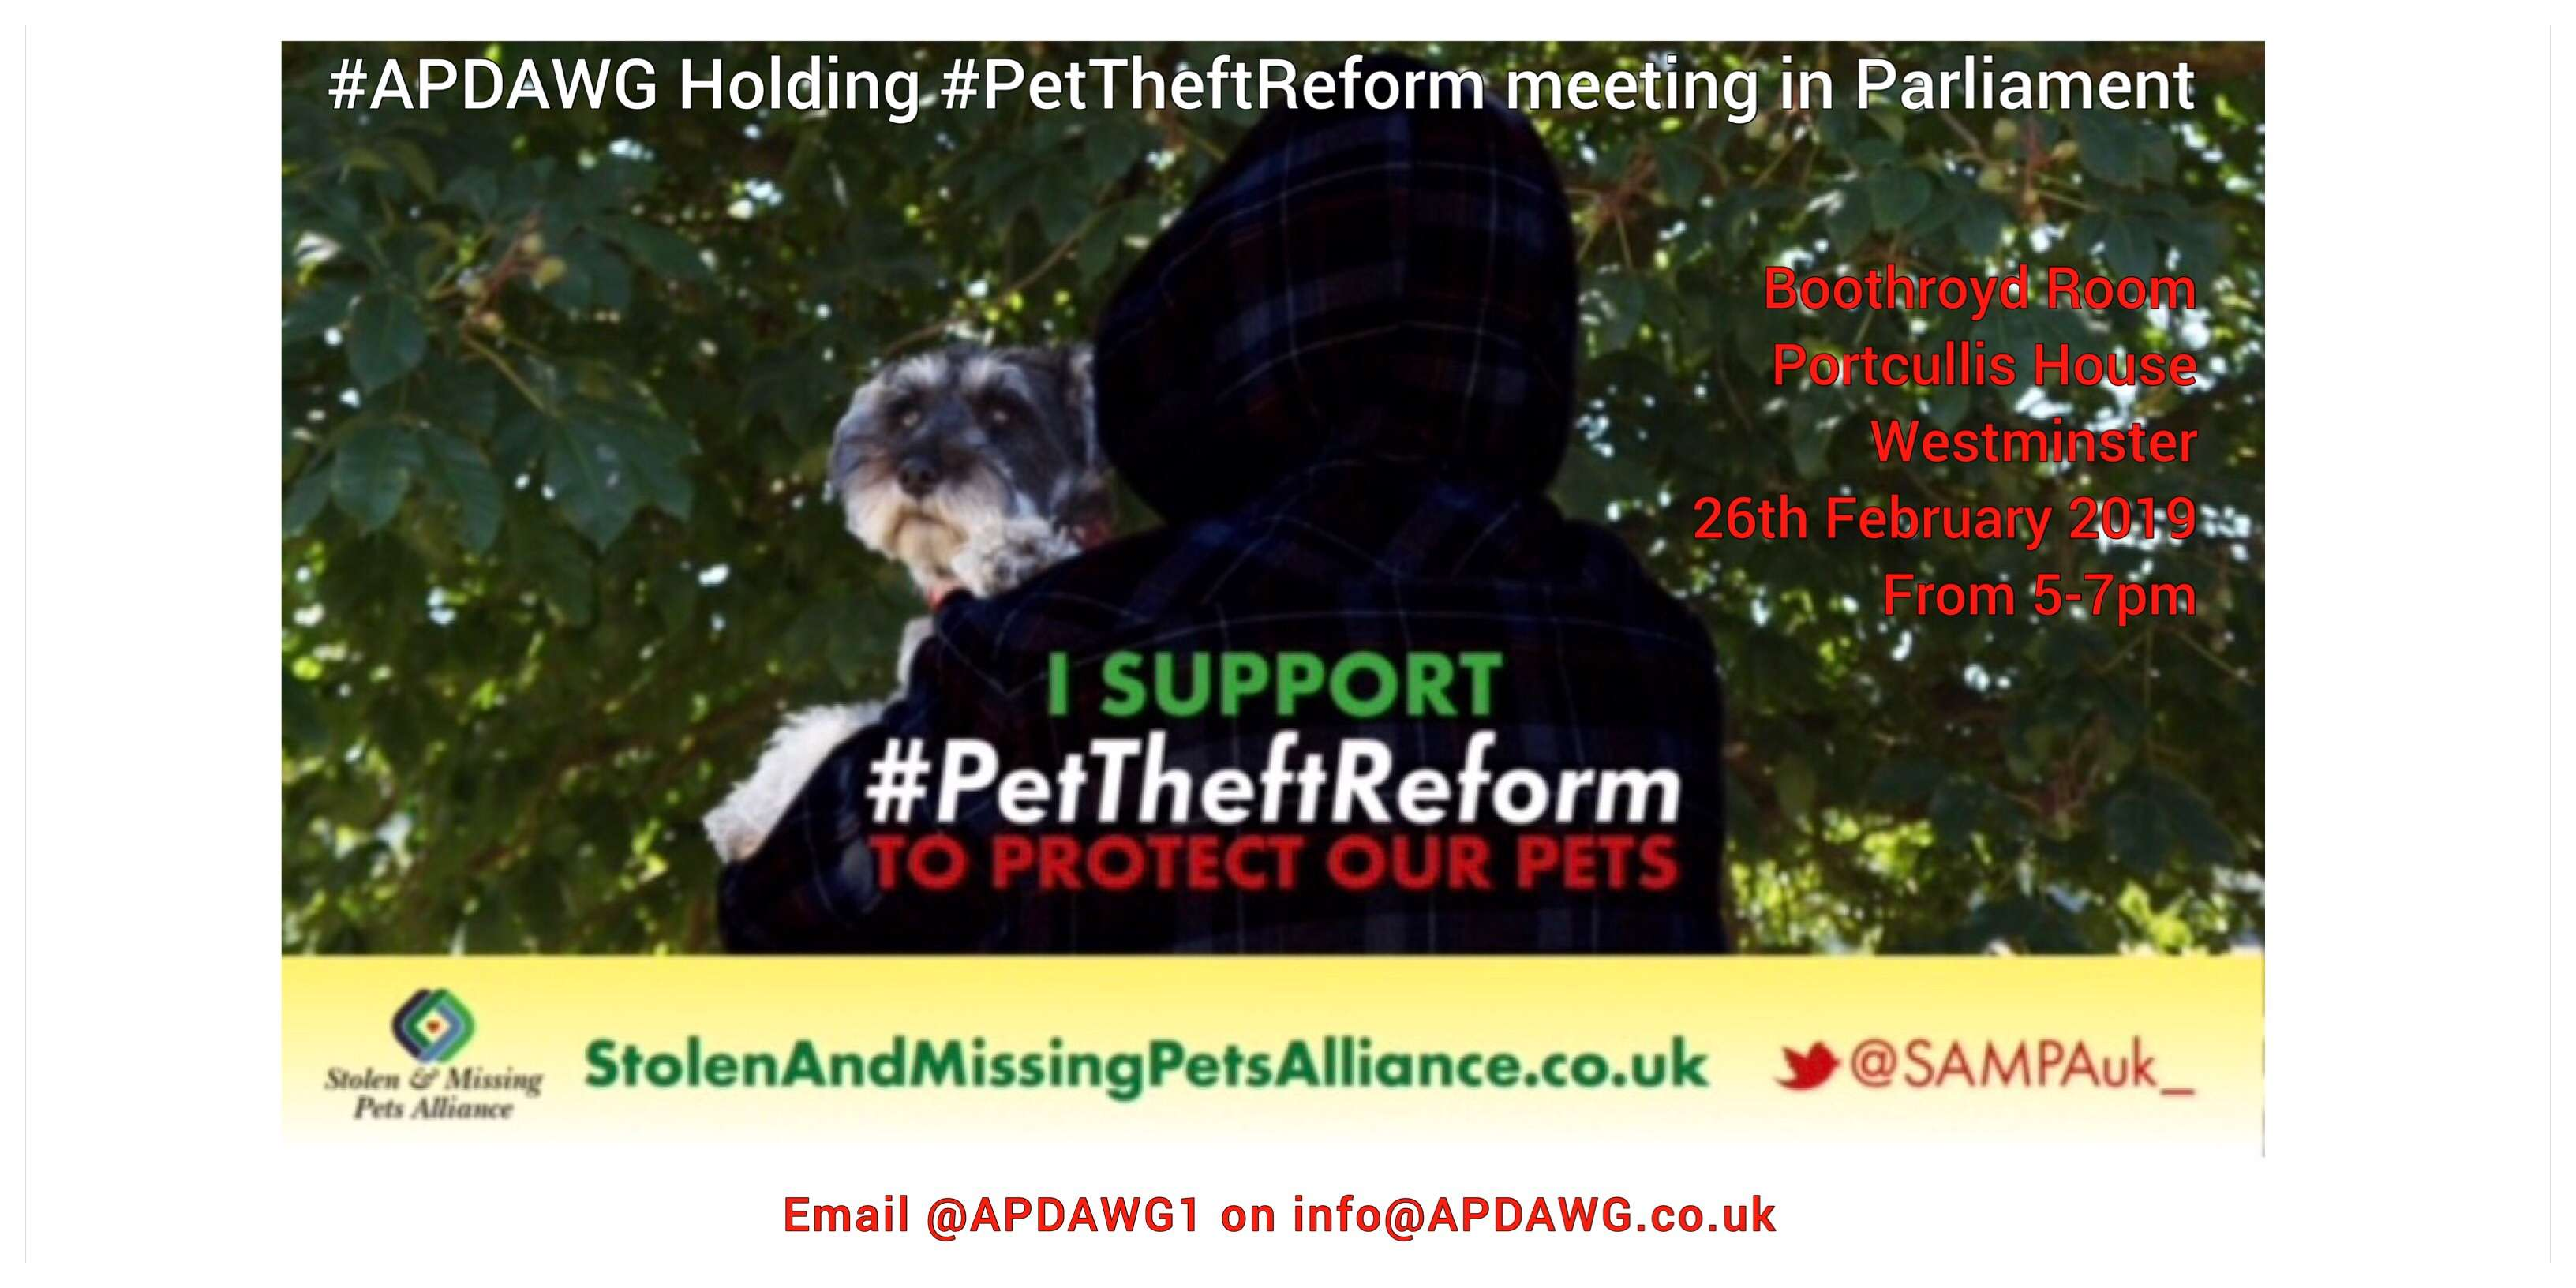 Please join us for the Pet Theft Meeting with #APDAWG 26.02.19 #Parliament #PetTheftReform